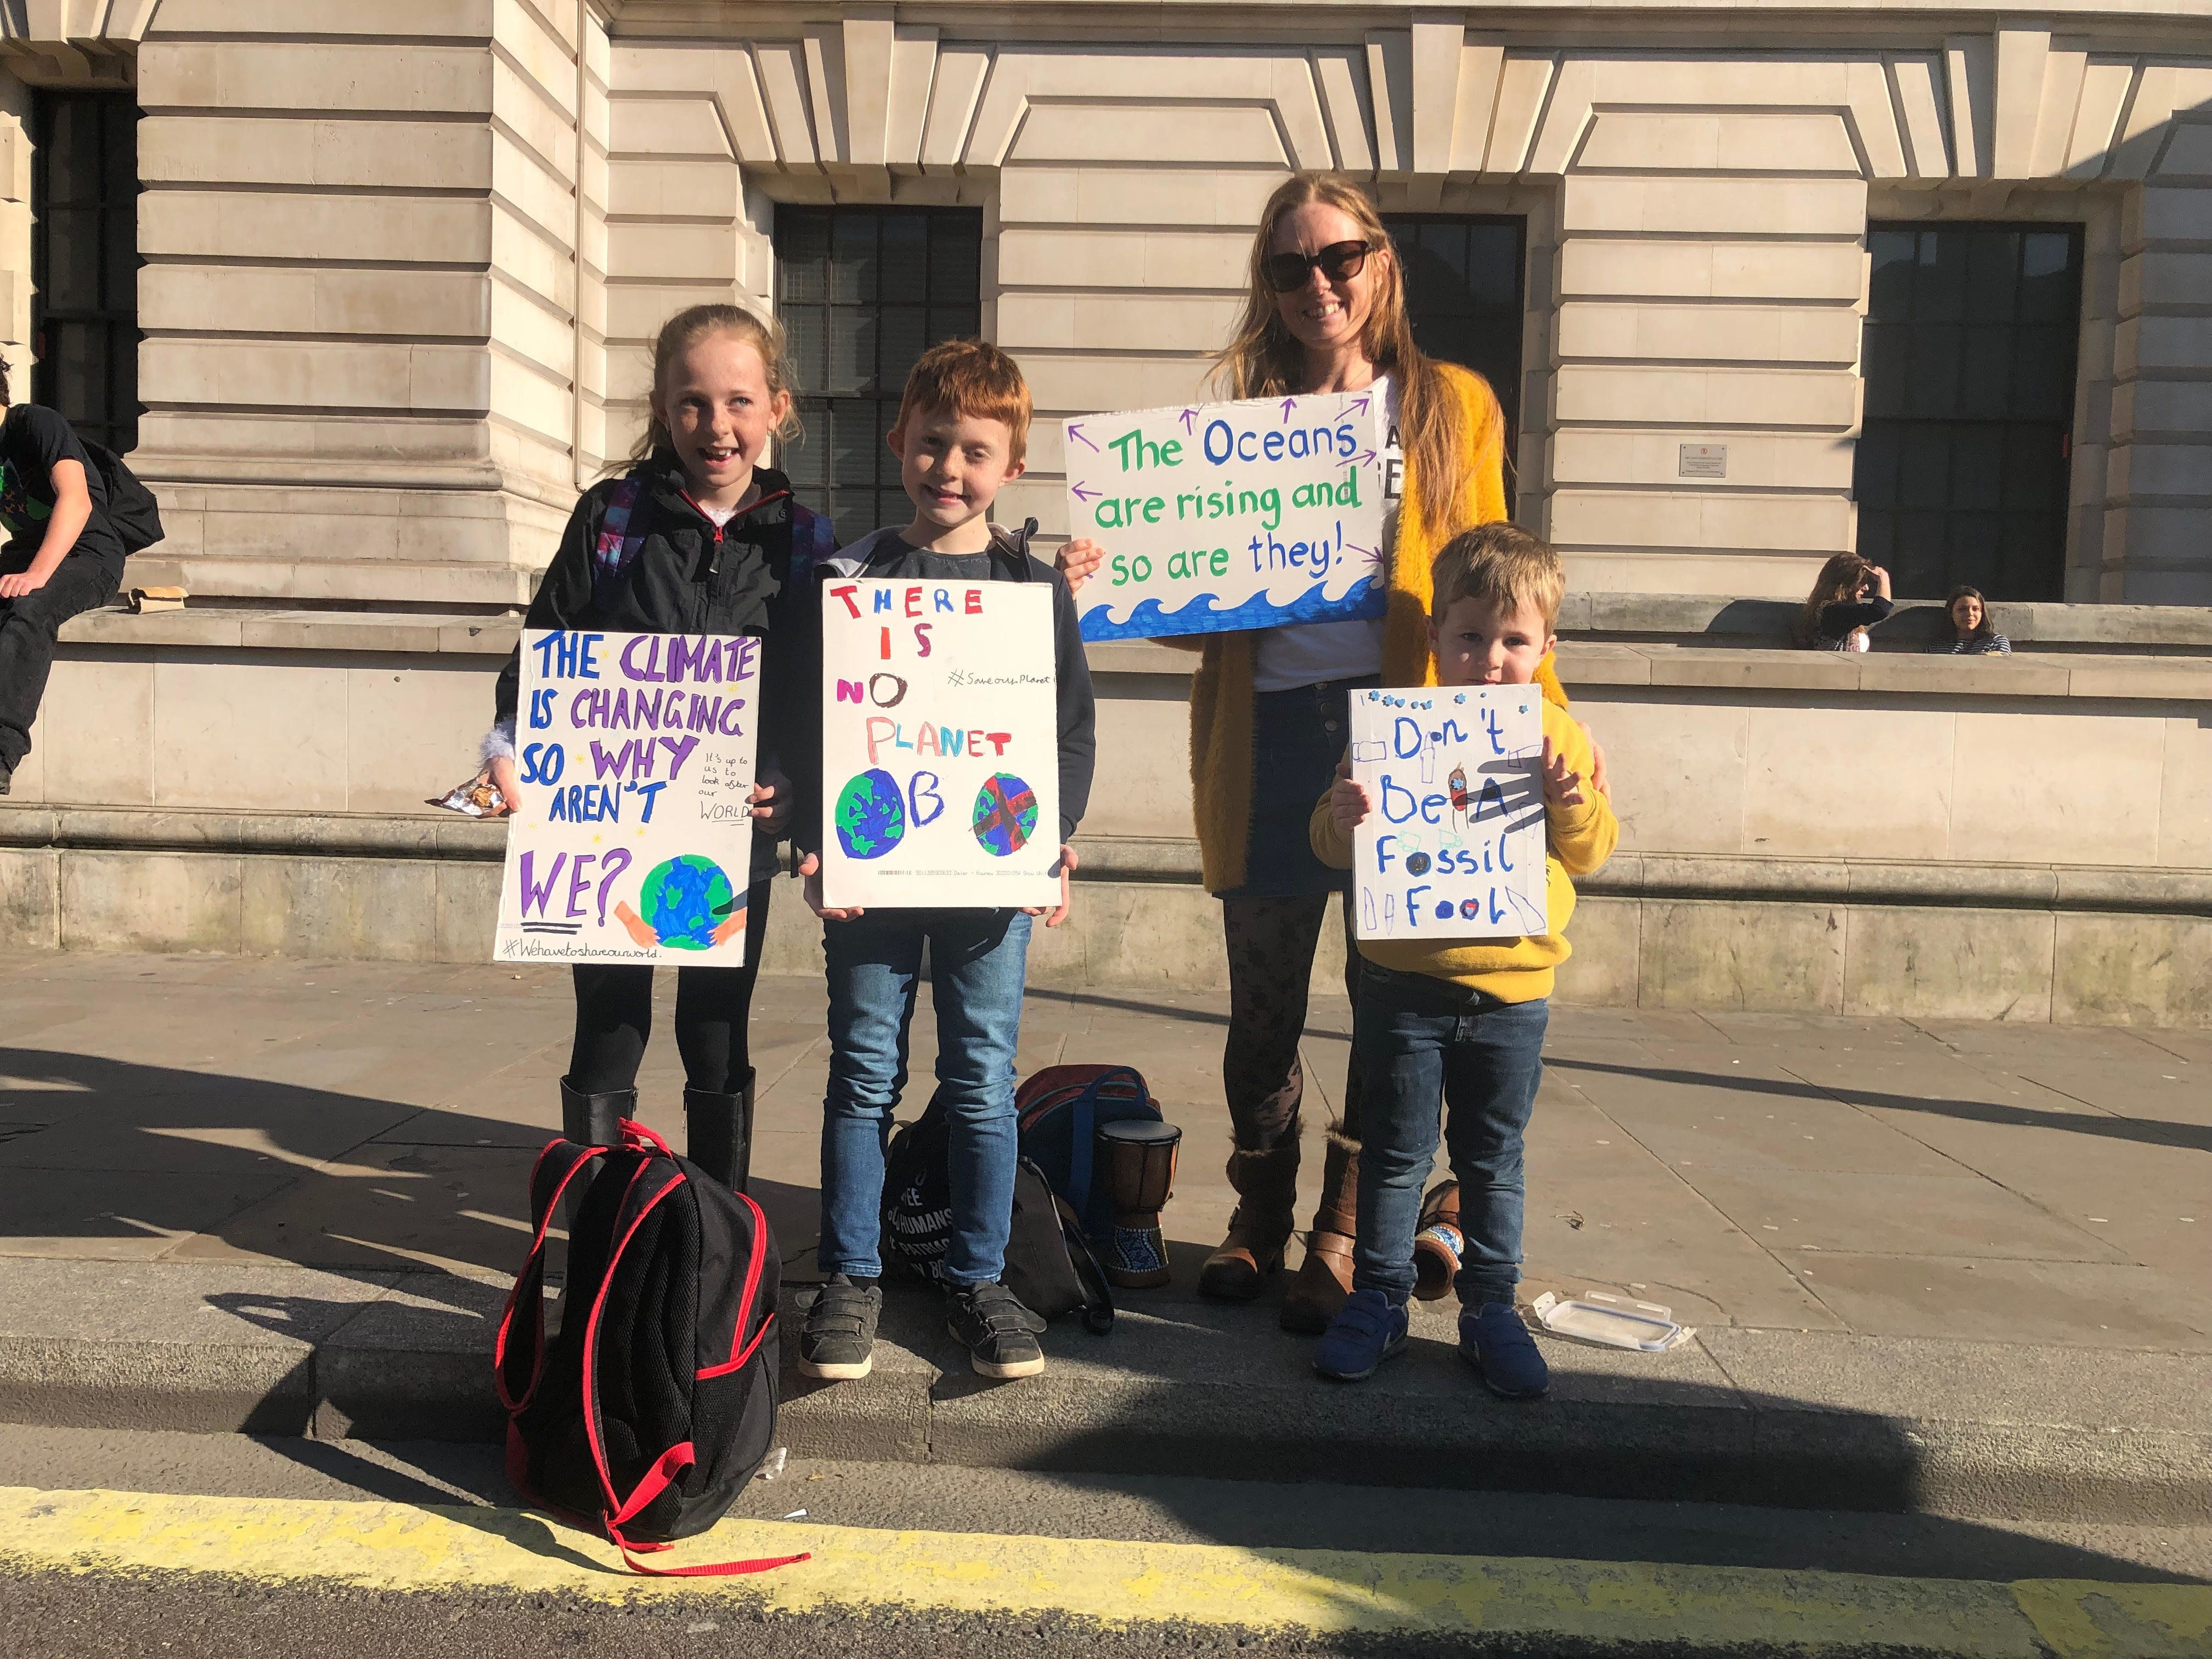 'An Attack on Nature Is An Attack On Us': Here's What The Kids On Climate Strike Want You To